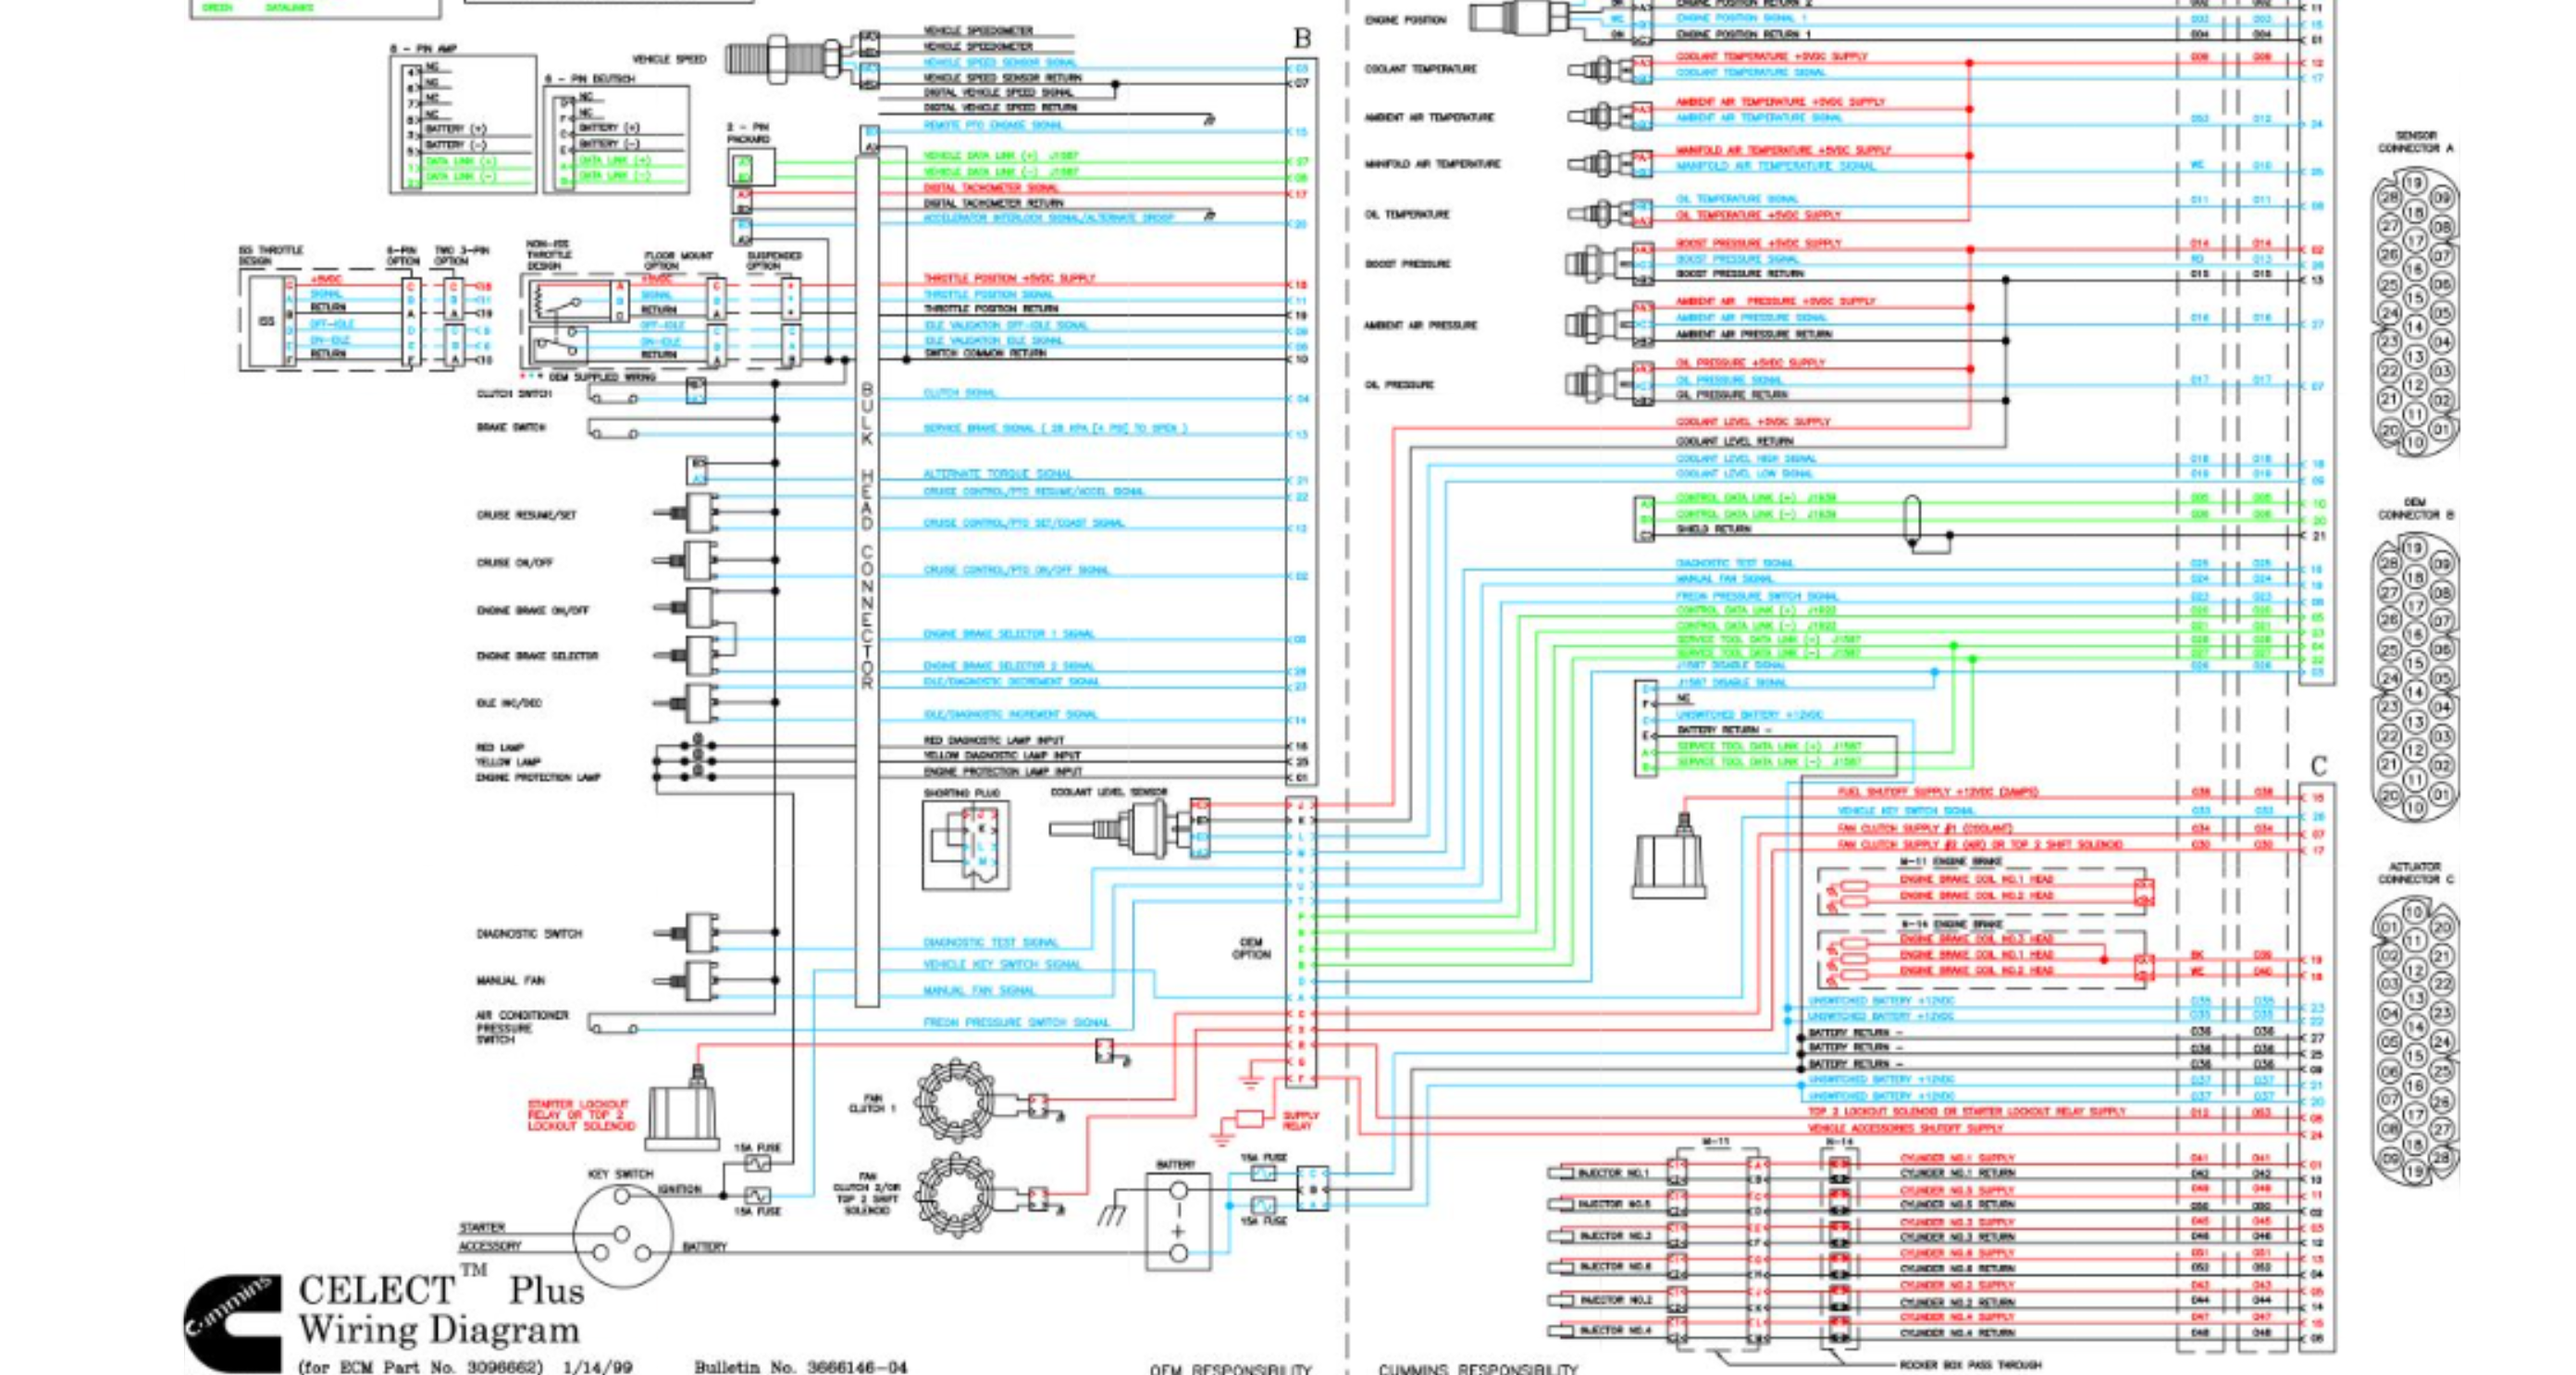 Mins Ecm Wiring Diagram - Wiring Diagram Home Mins Wire Harness on wire cap, wire holder, wire lamp, wire antenna, wire connector, wire clothing, wire ball, wire sleeve, wire nut, wire leads,